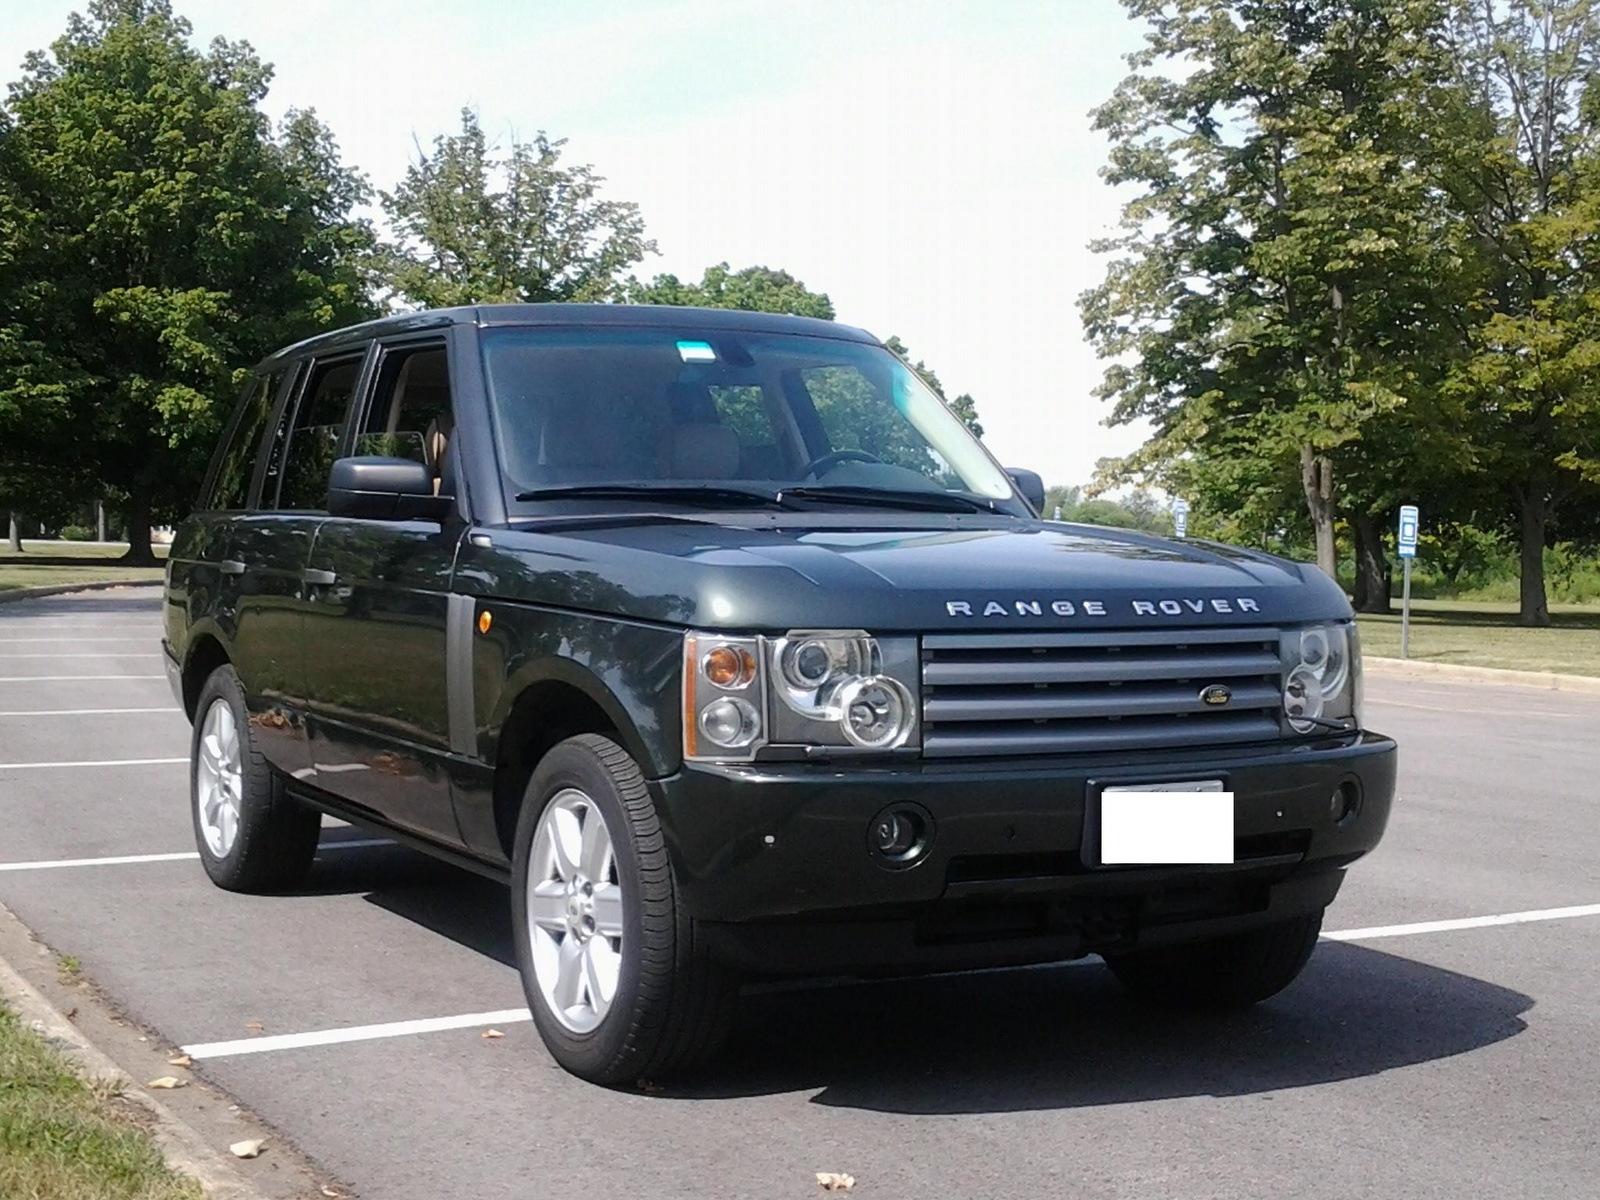 2005 land rover range rover pictures cargurus. Black Bedroom Furniture Sets. Home Design Ideas